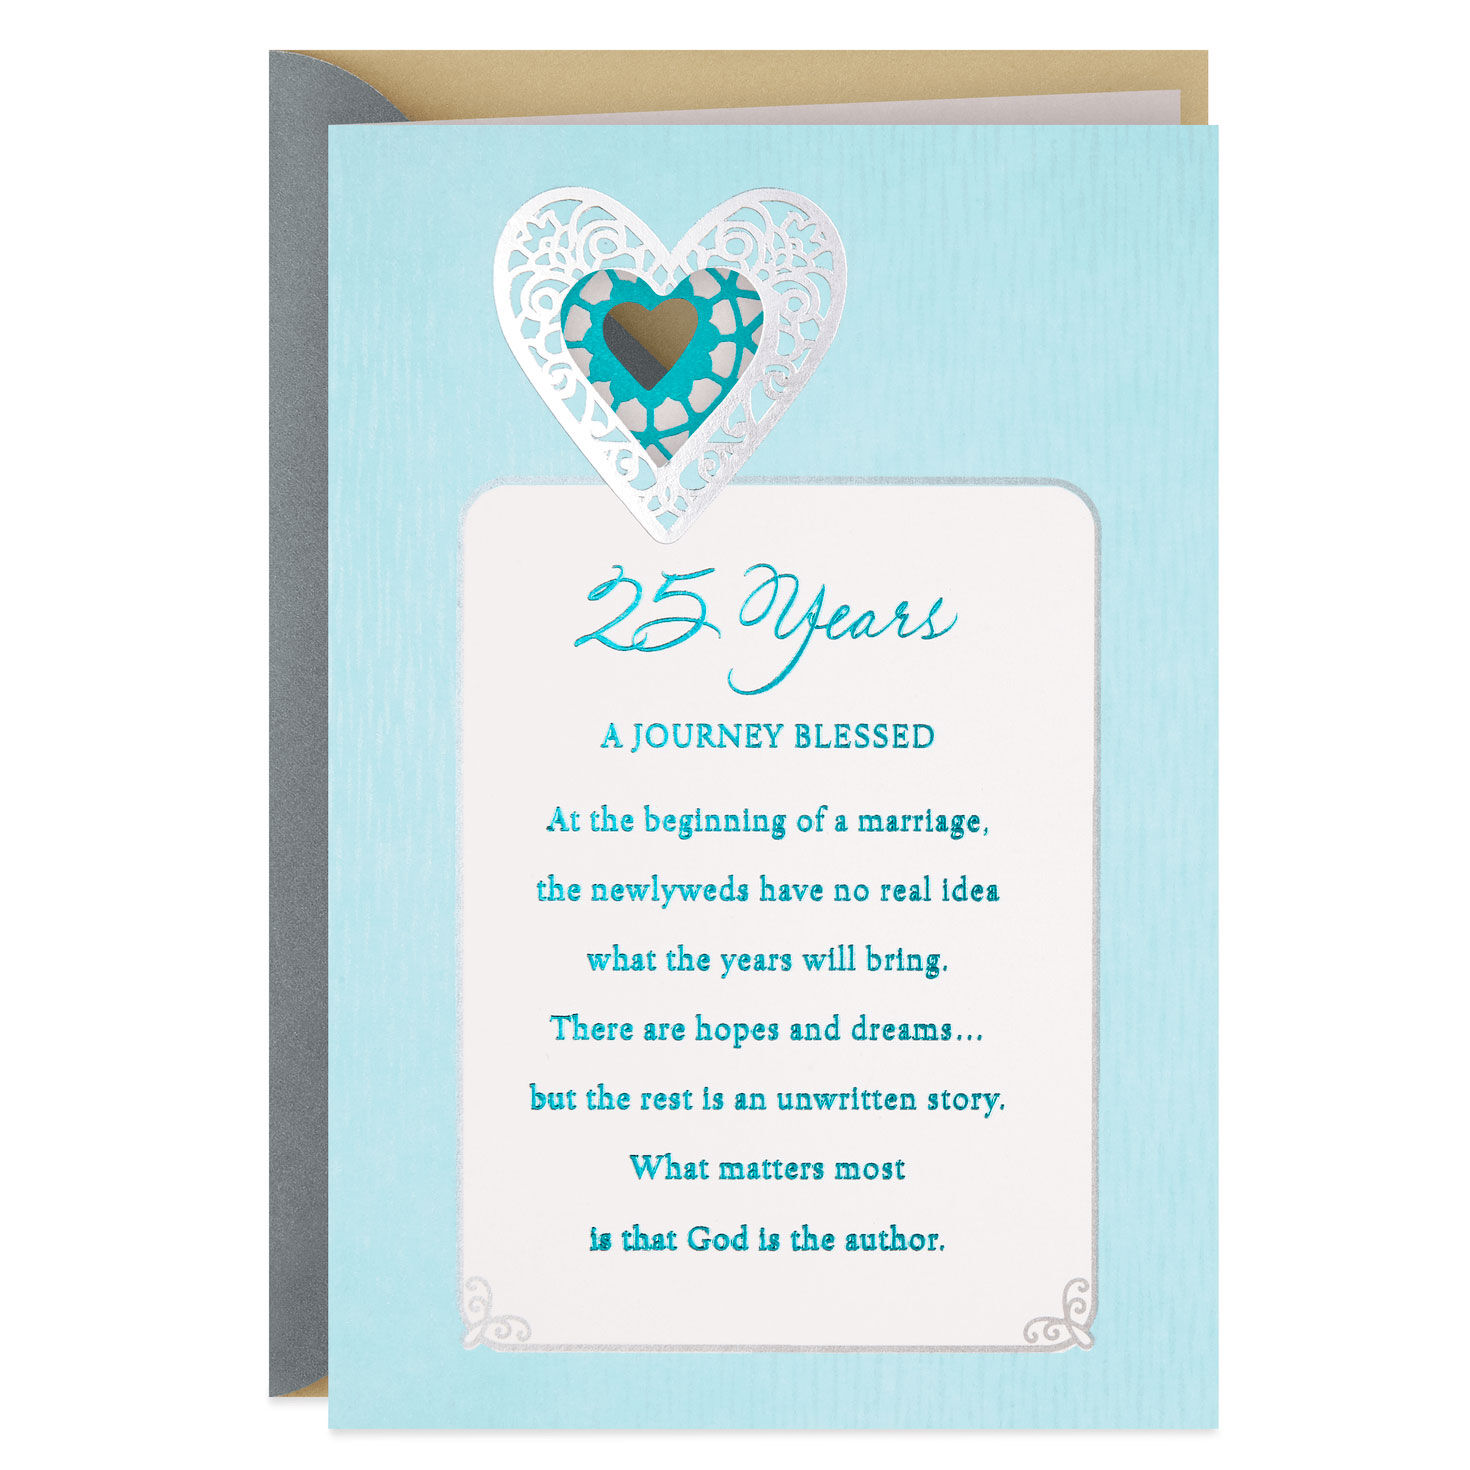 The Blessing of Marriage 25th Anniversary Card - Greeting Cards - Hallmark